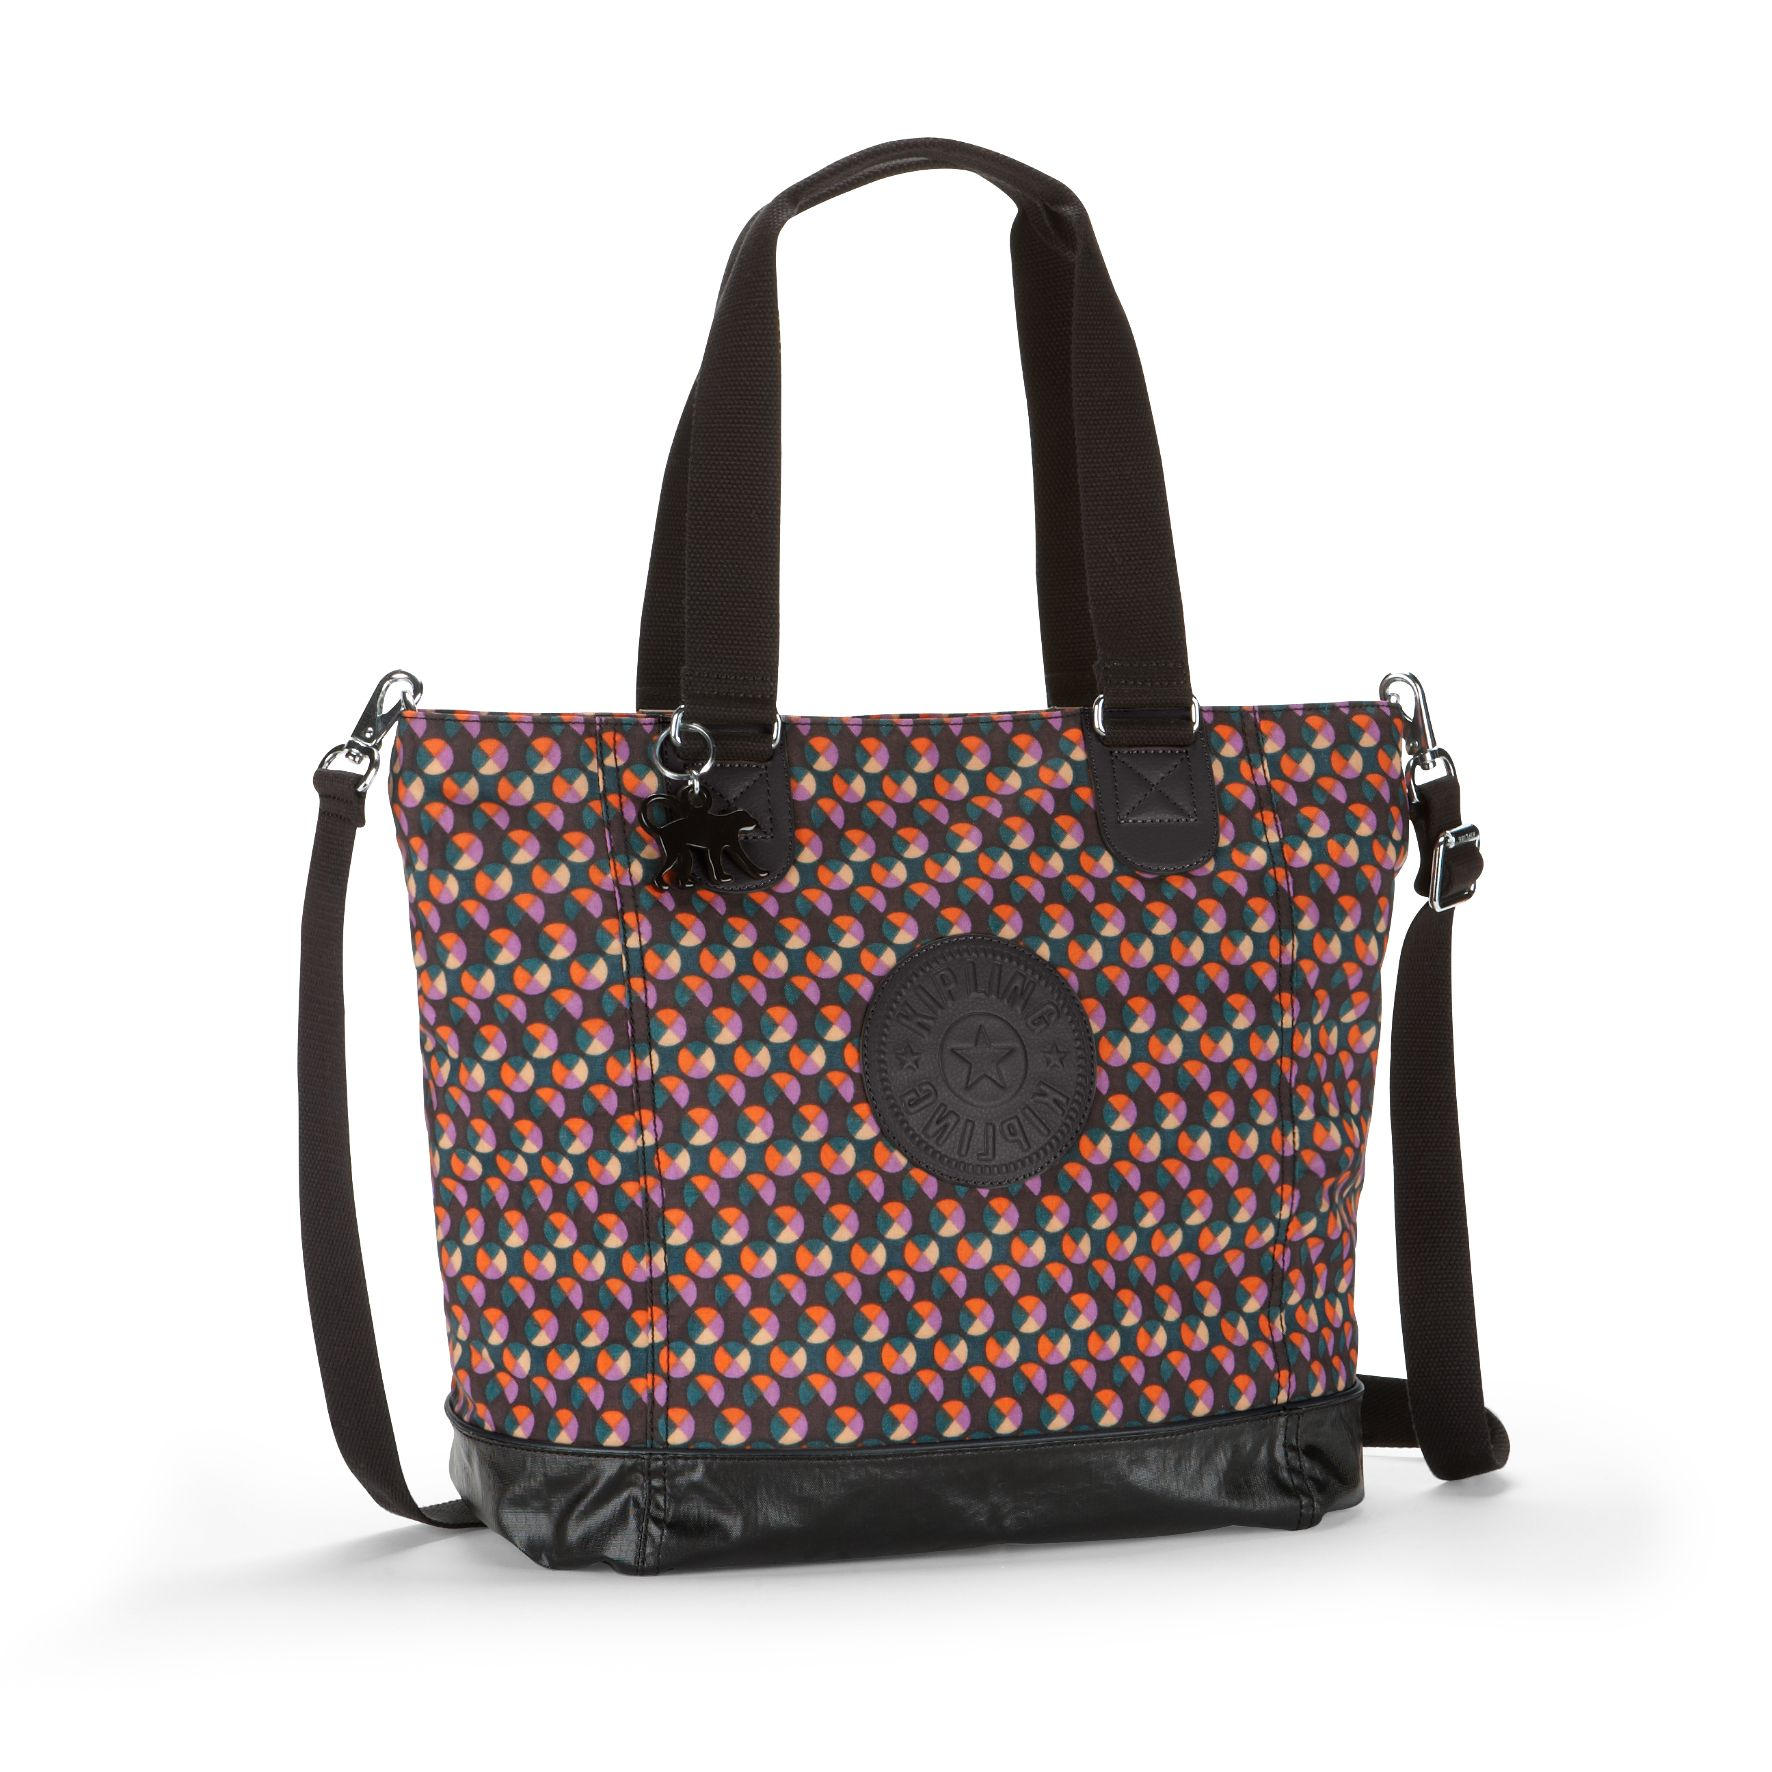 Kipling Shopper combo bag